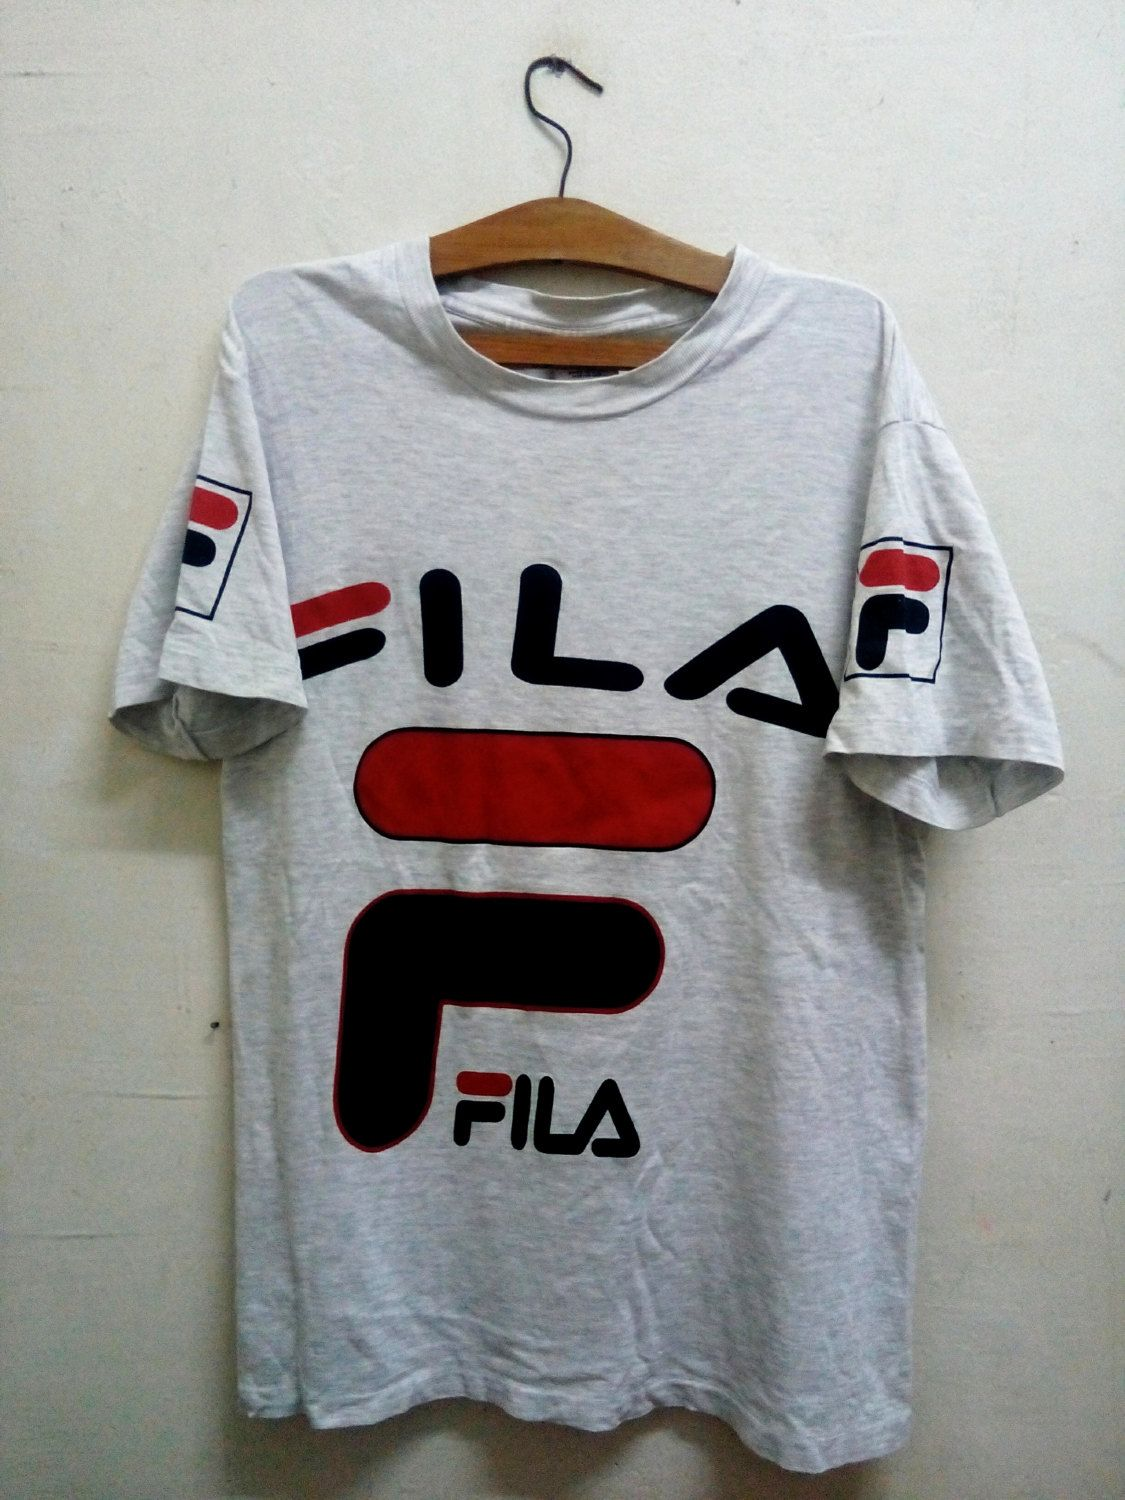 91ca53b0dc4 Vintage Authentic FILA Sport Multilogo Spell Out t-shirt Lolife OG 90's  Style with Fabolous Hipster Swag Men Sz M by Psychovault on Etsy